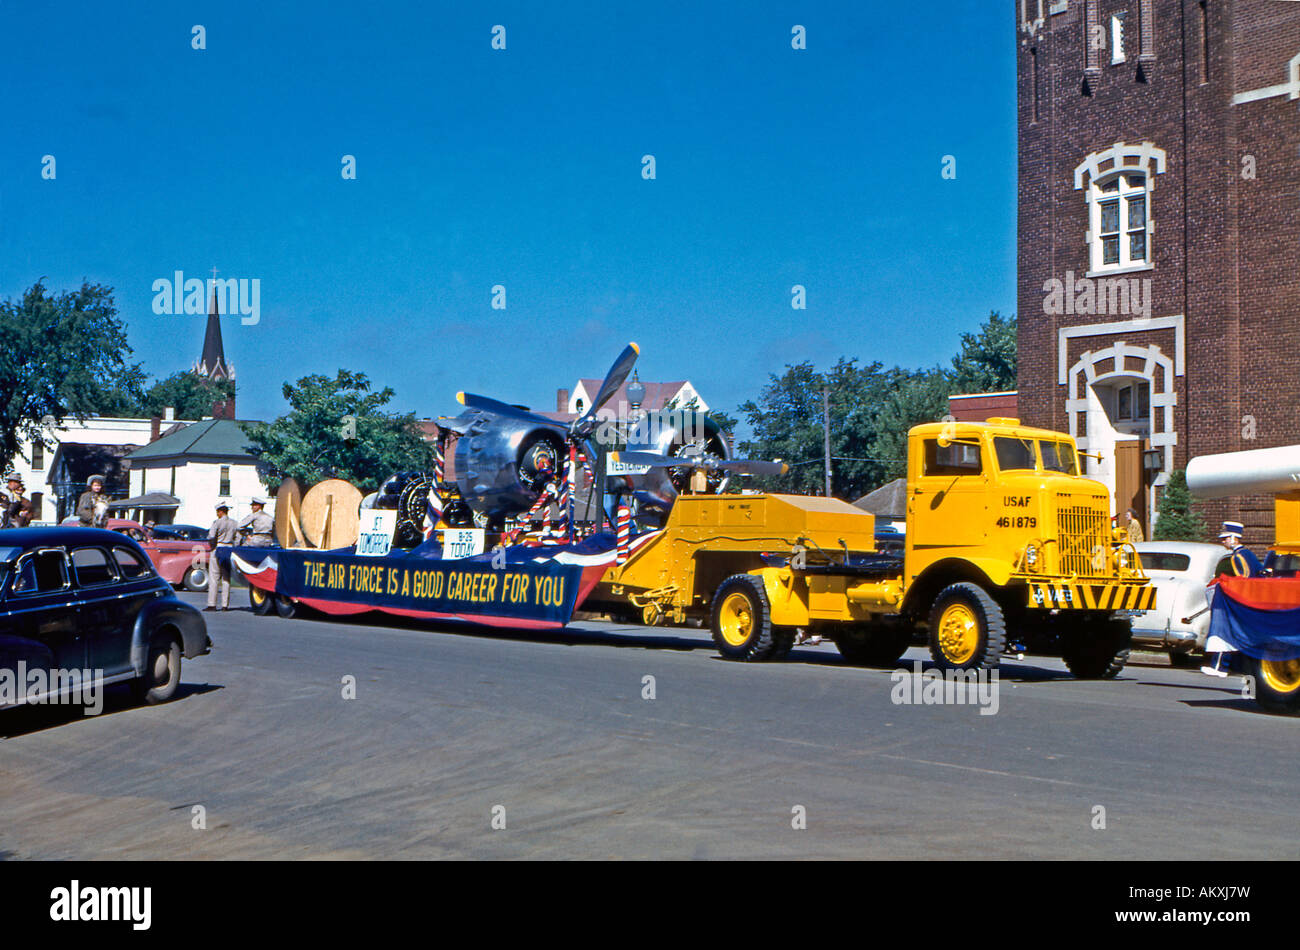 Flatbed truck of US Airforce in a recruitment drive at a parade Enid Oklahoma USA 1950 - Stock Image